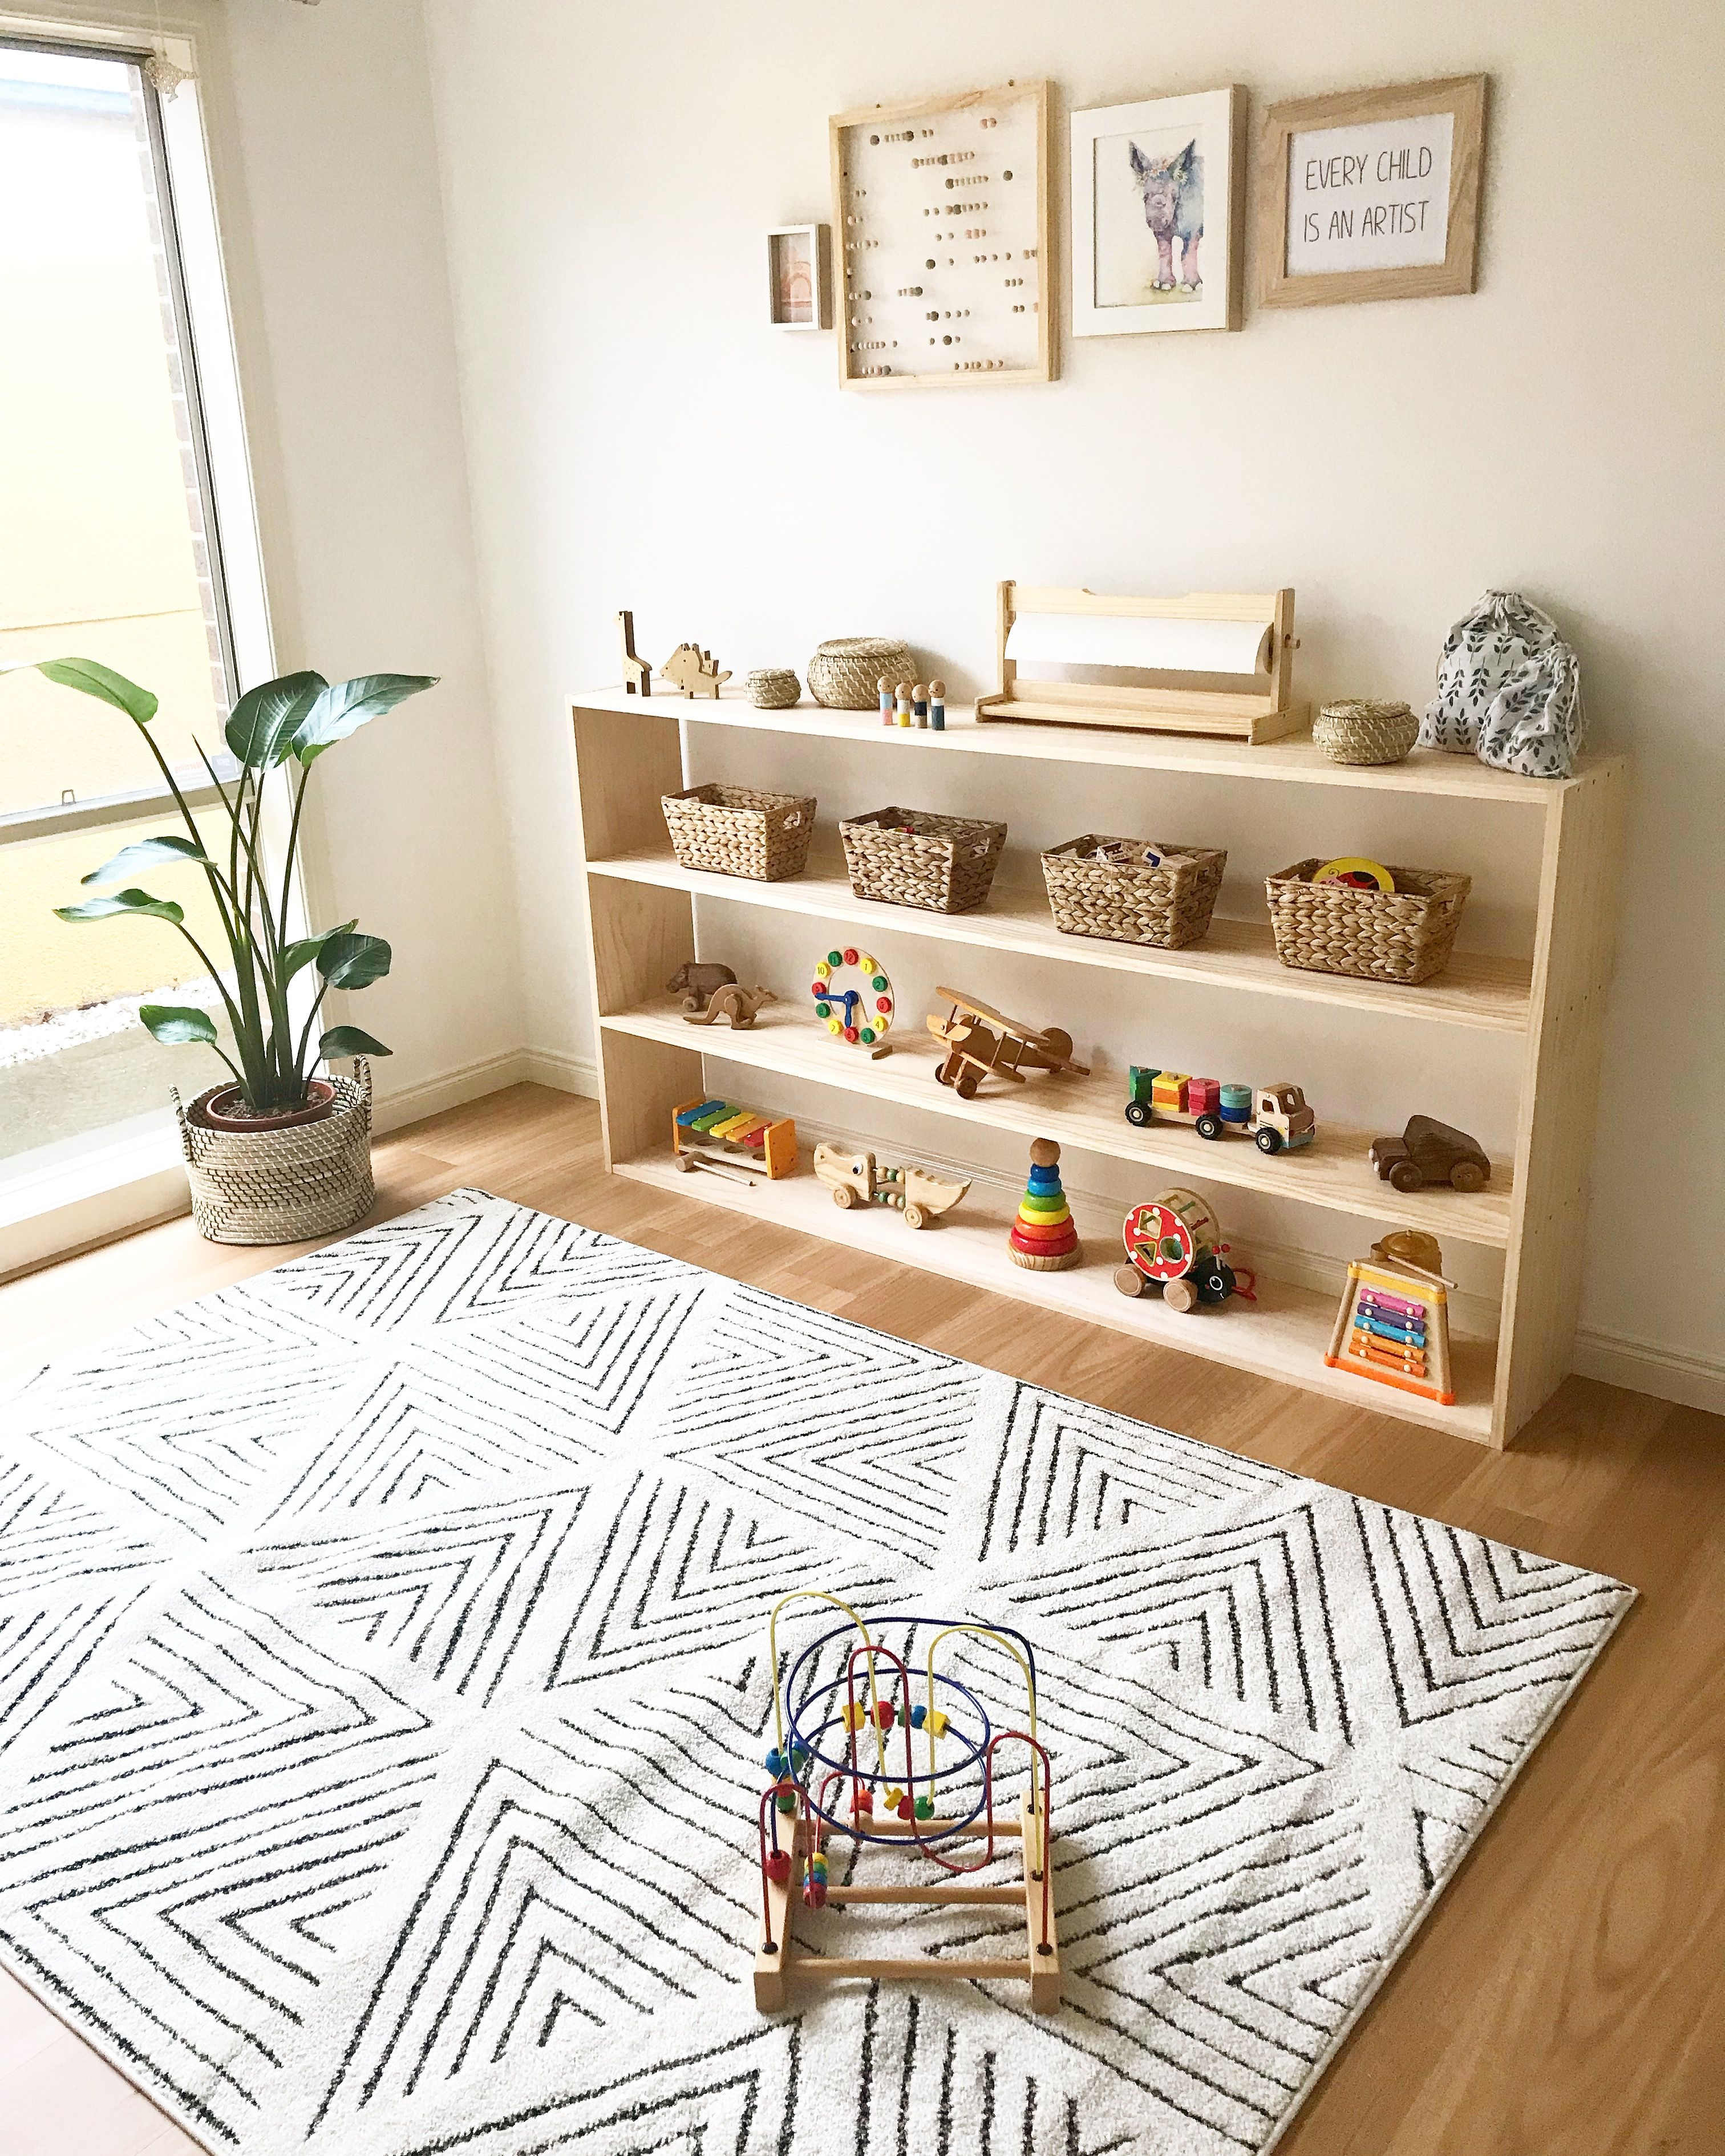 Our Diy Montessori Toy Shelf Kids Room Inspiration Toy Shelves Kid Room Decor